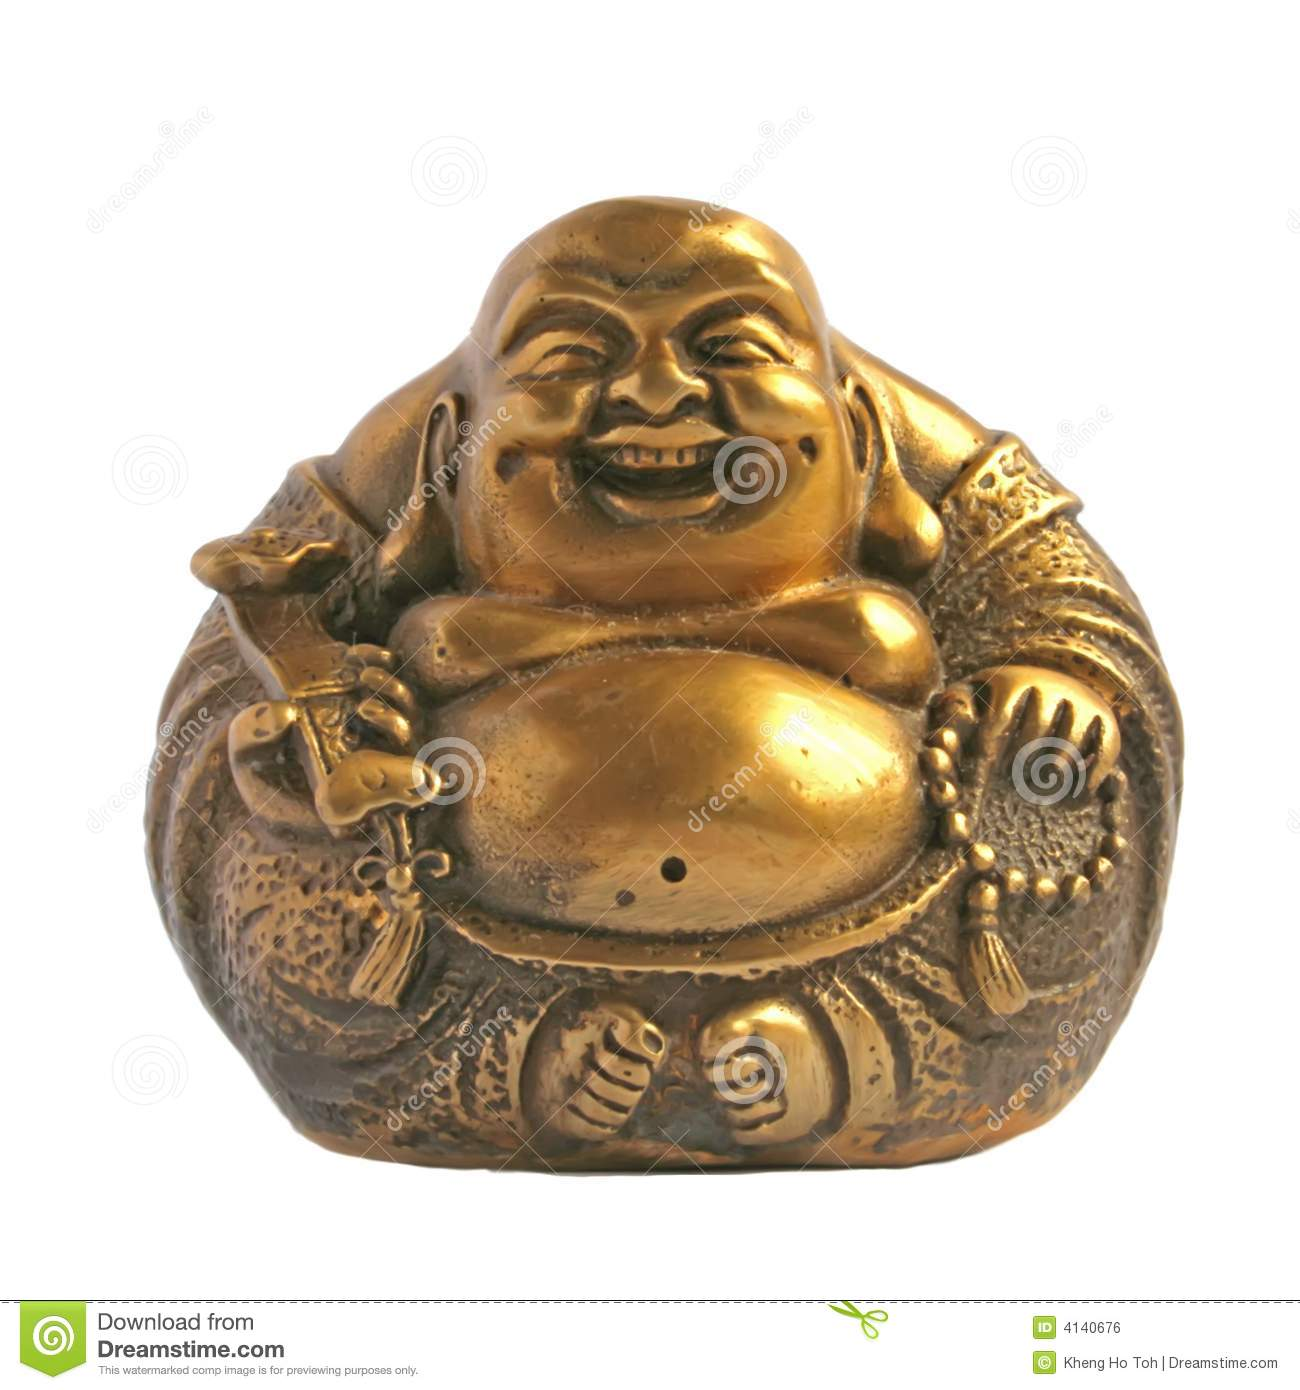 Laughing Buddha Stock Images Download 1195 Royalty Free Photos